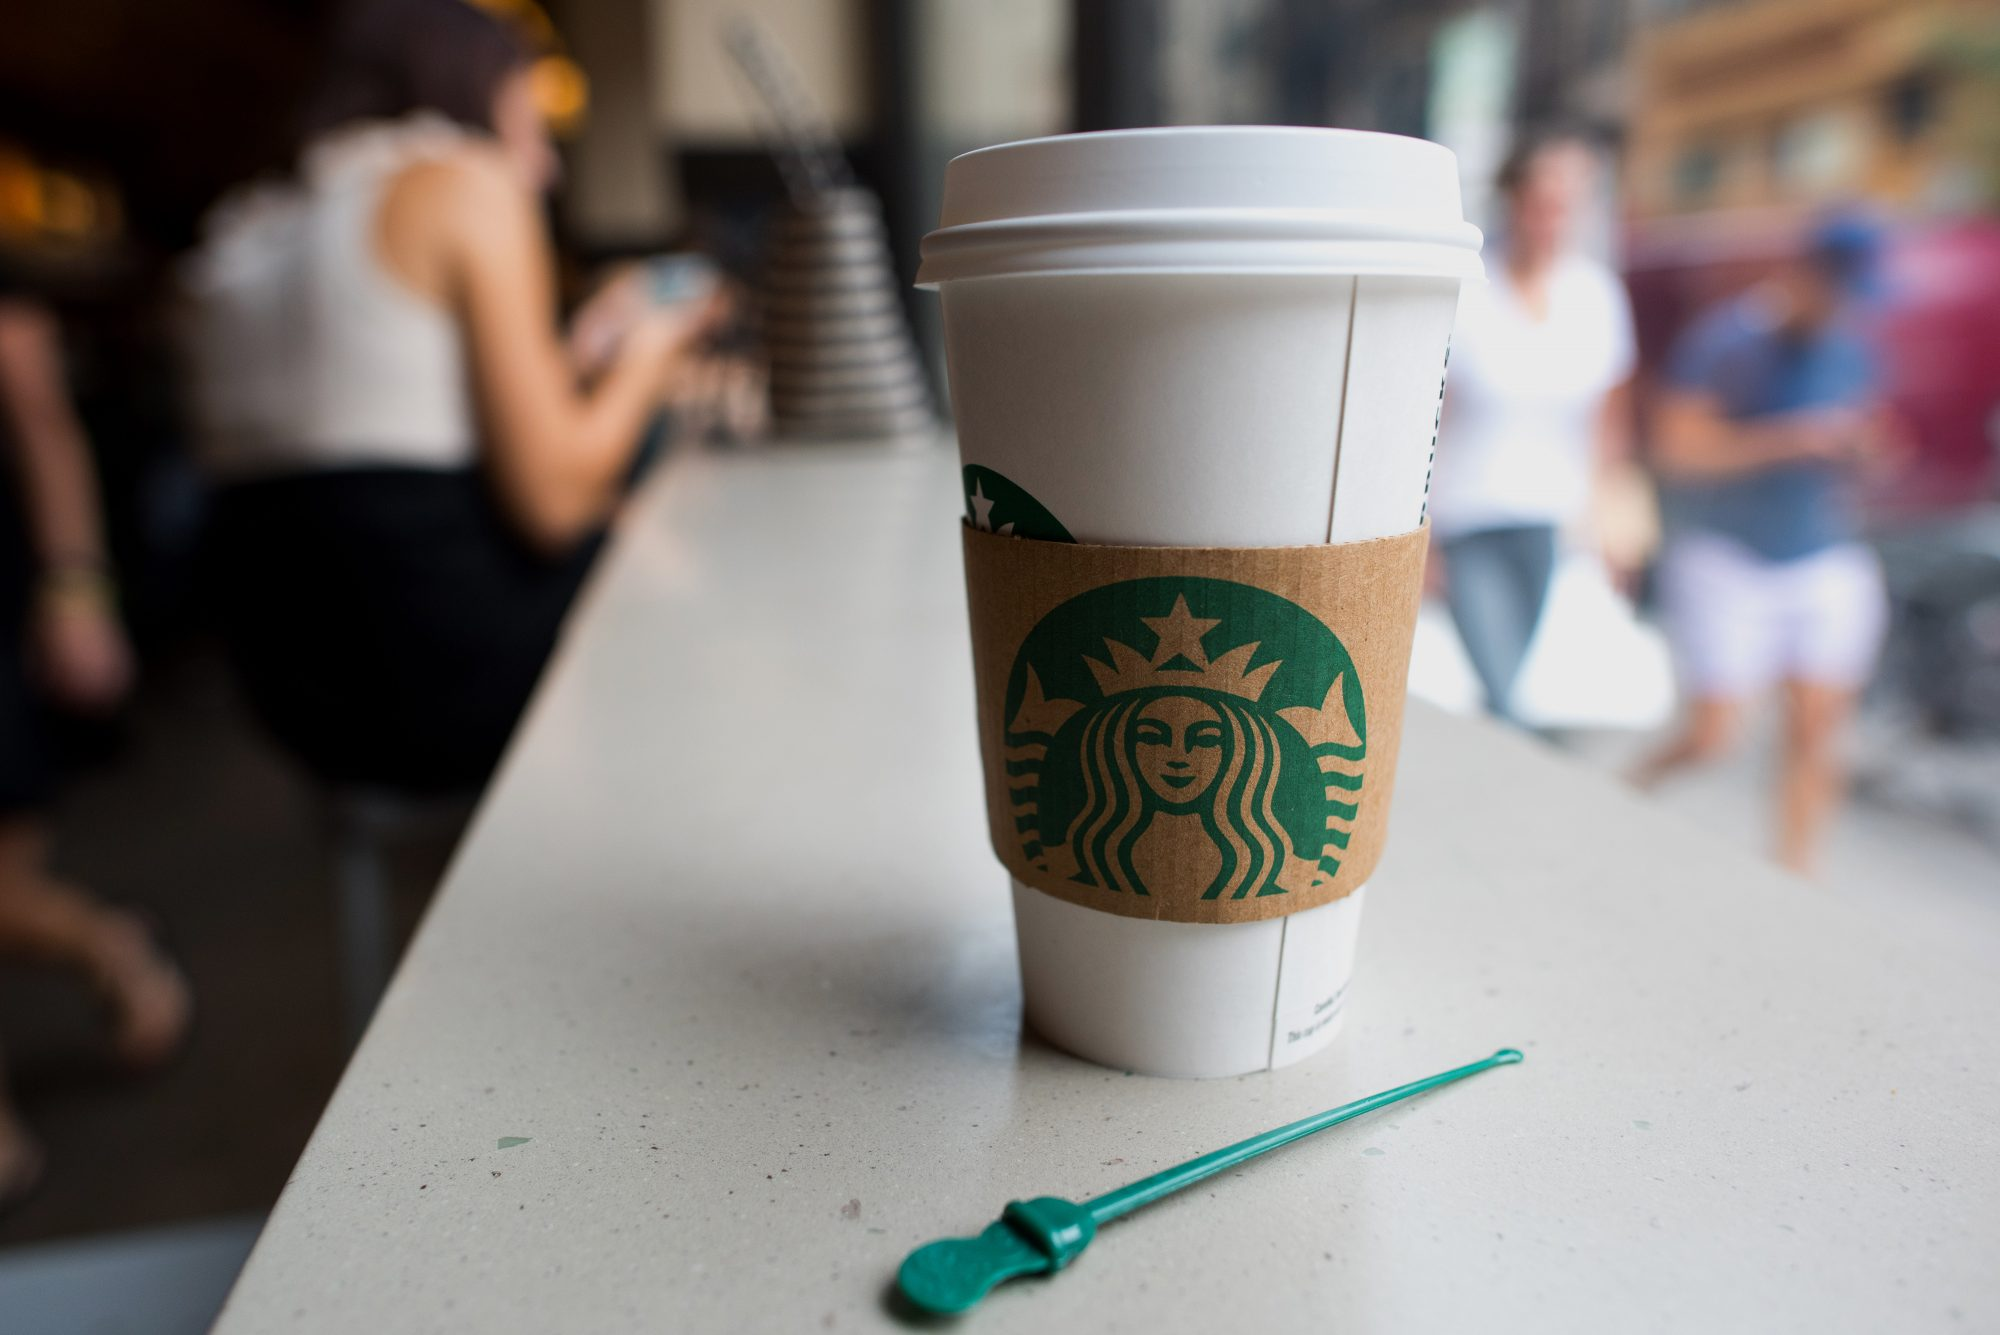 newsflash: a venti starbucks drink doesn't always contain more